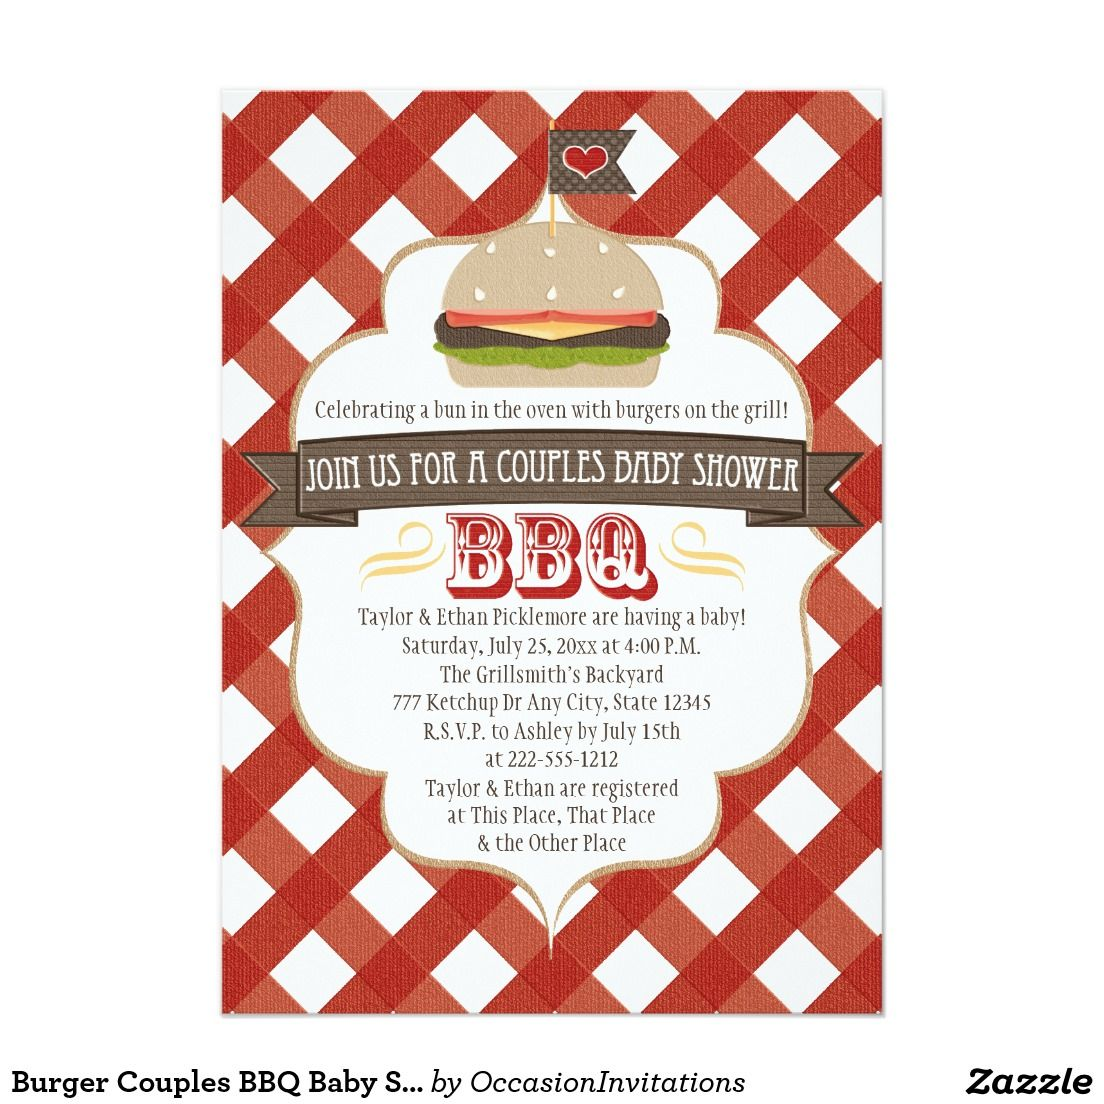 Burger Couples BBQ Baby Shower Invitations | Shower invitations